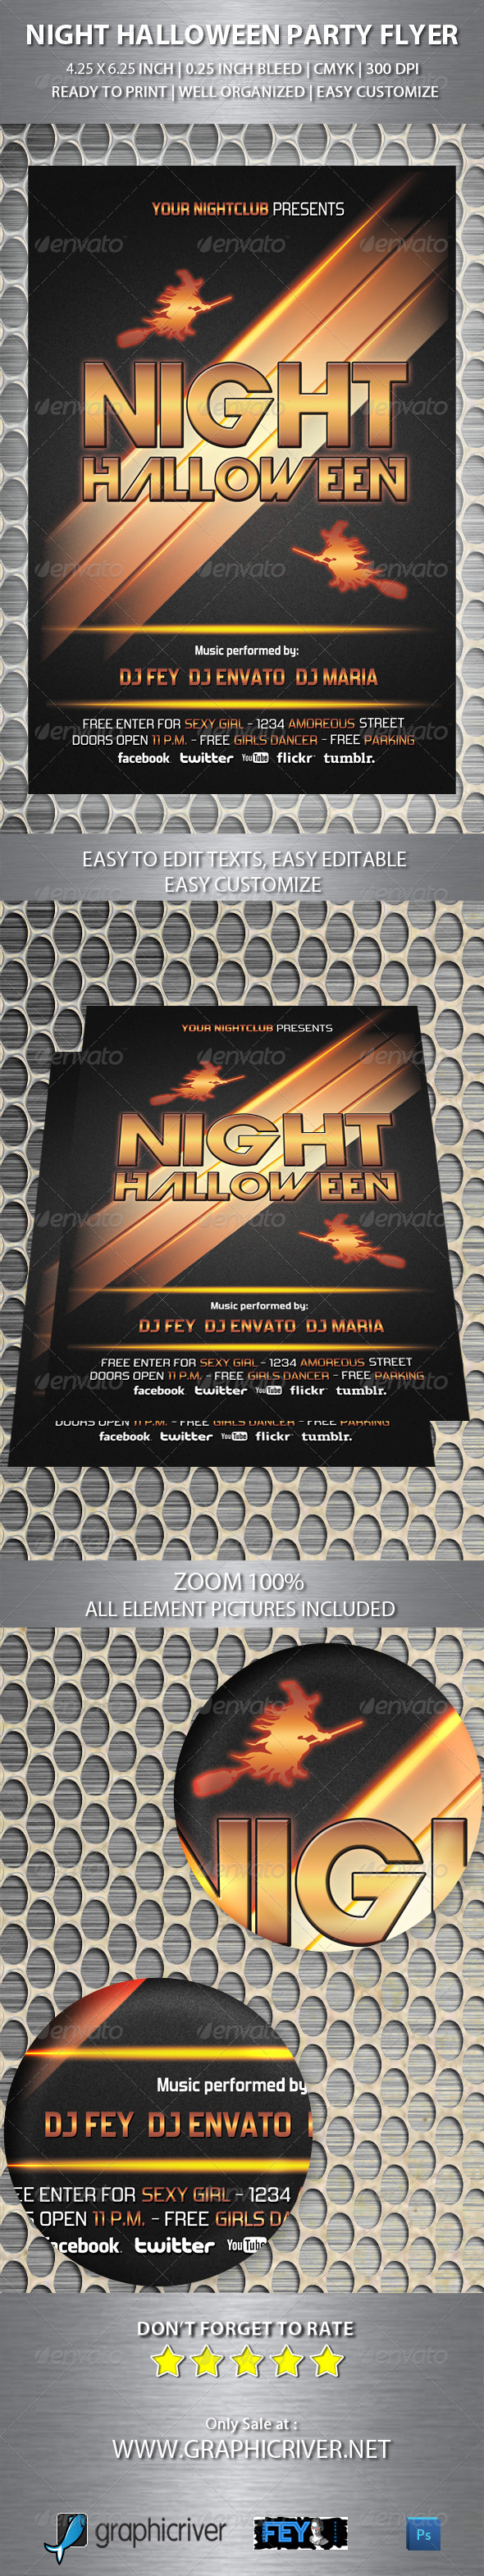 GraphicRiver Night Halloween Party Flyer 5410208